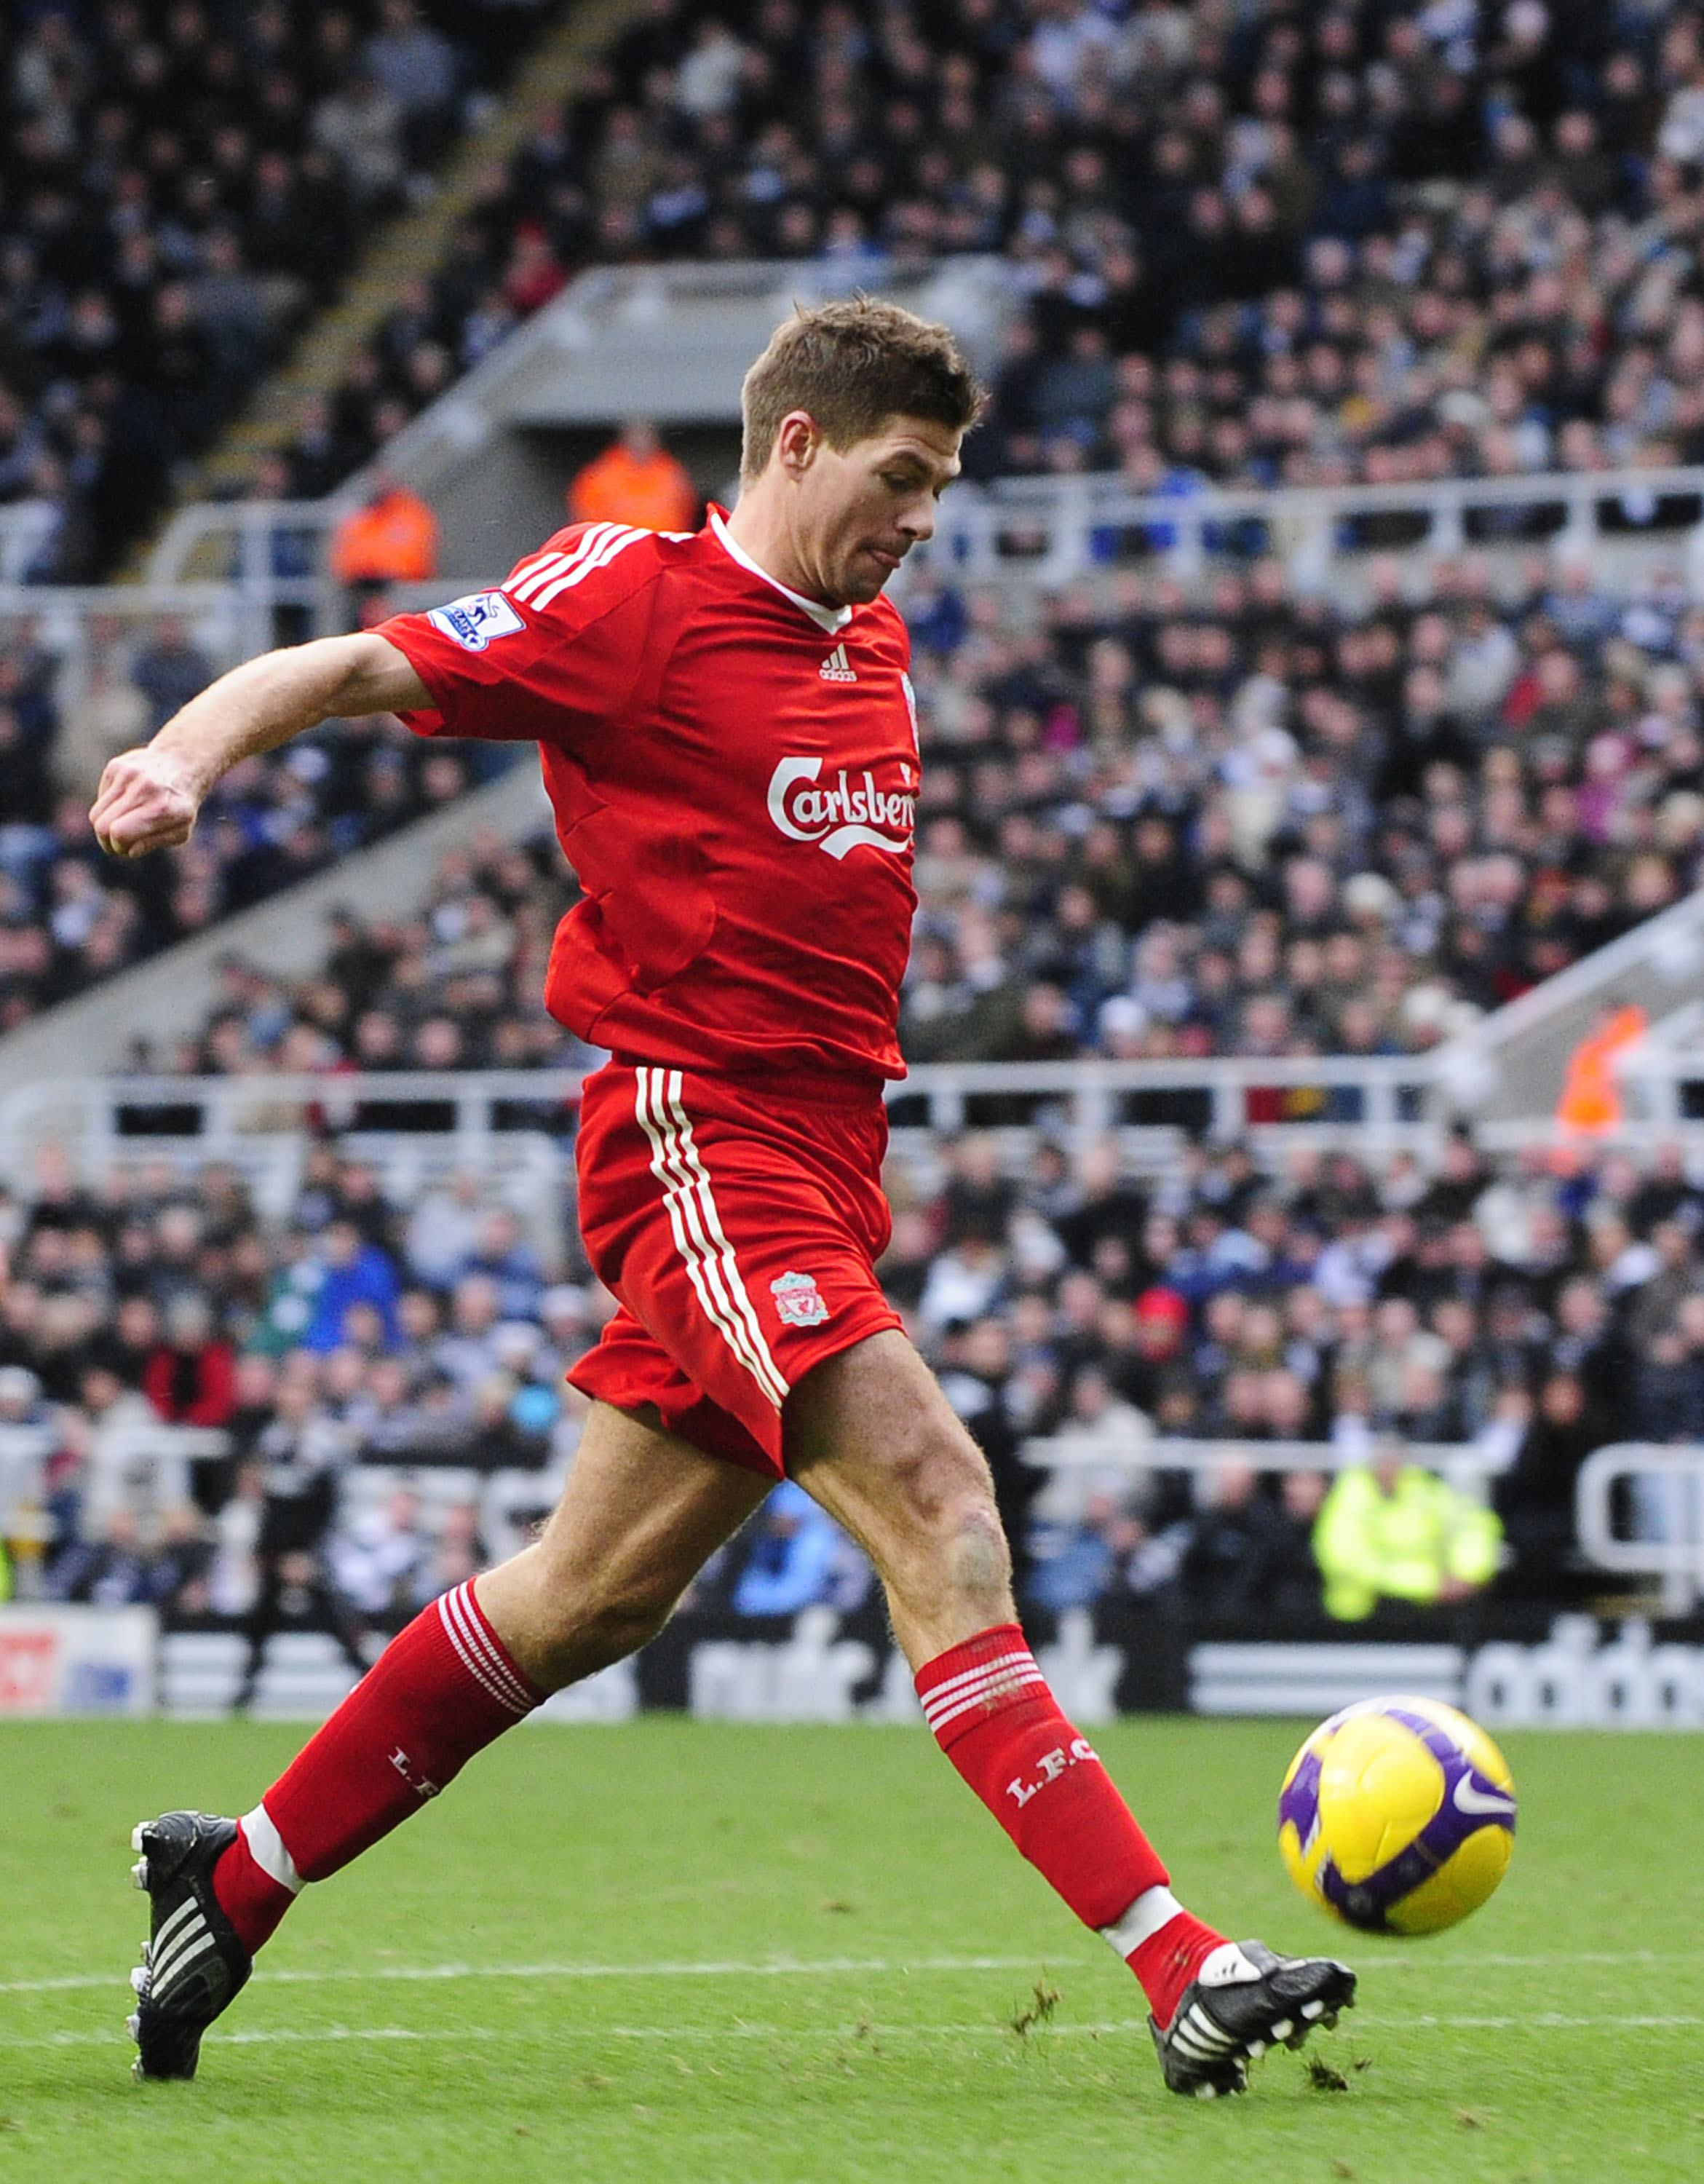 Liverpool's Steven Gerrard shoots to score in Newcastle, England on Sunday.